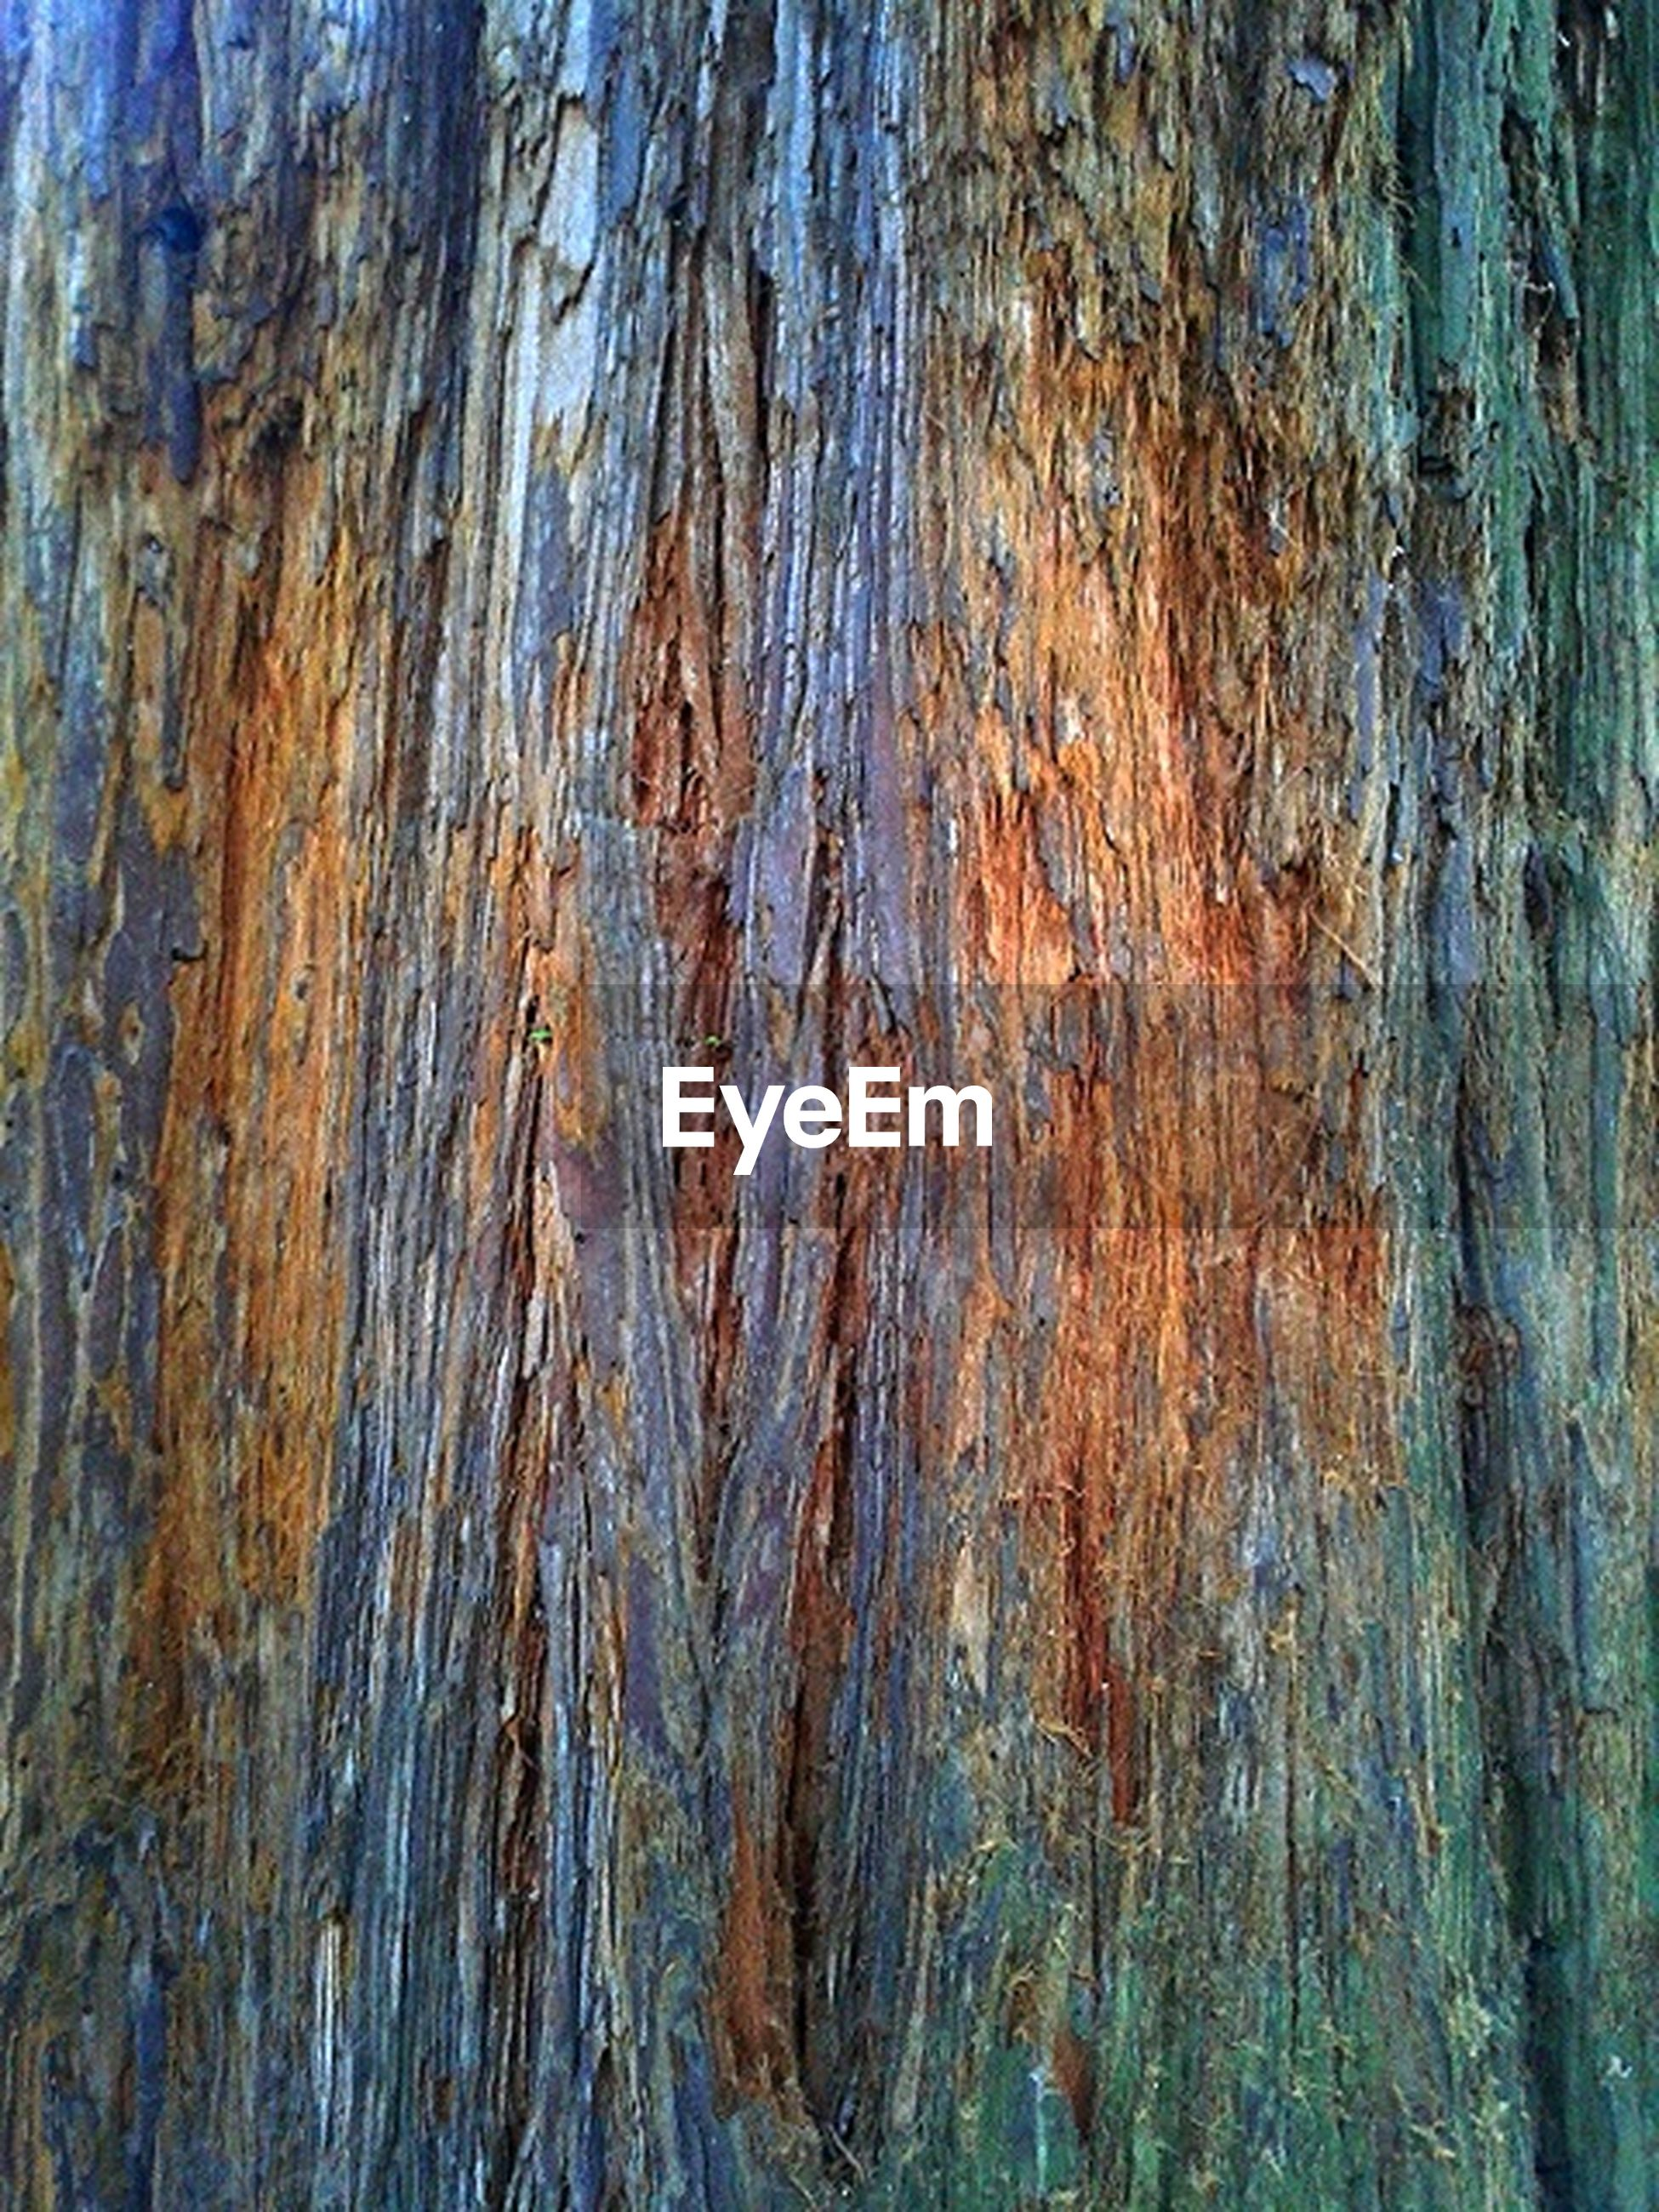 full frame, textured, backgrounds, wood - material, tree trunk, close-up, rough, pattern, weathered, tree, natural pattern, bark, wood, blue, wooden, outdoors, detail, day, nature, no people